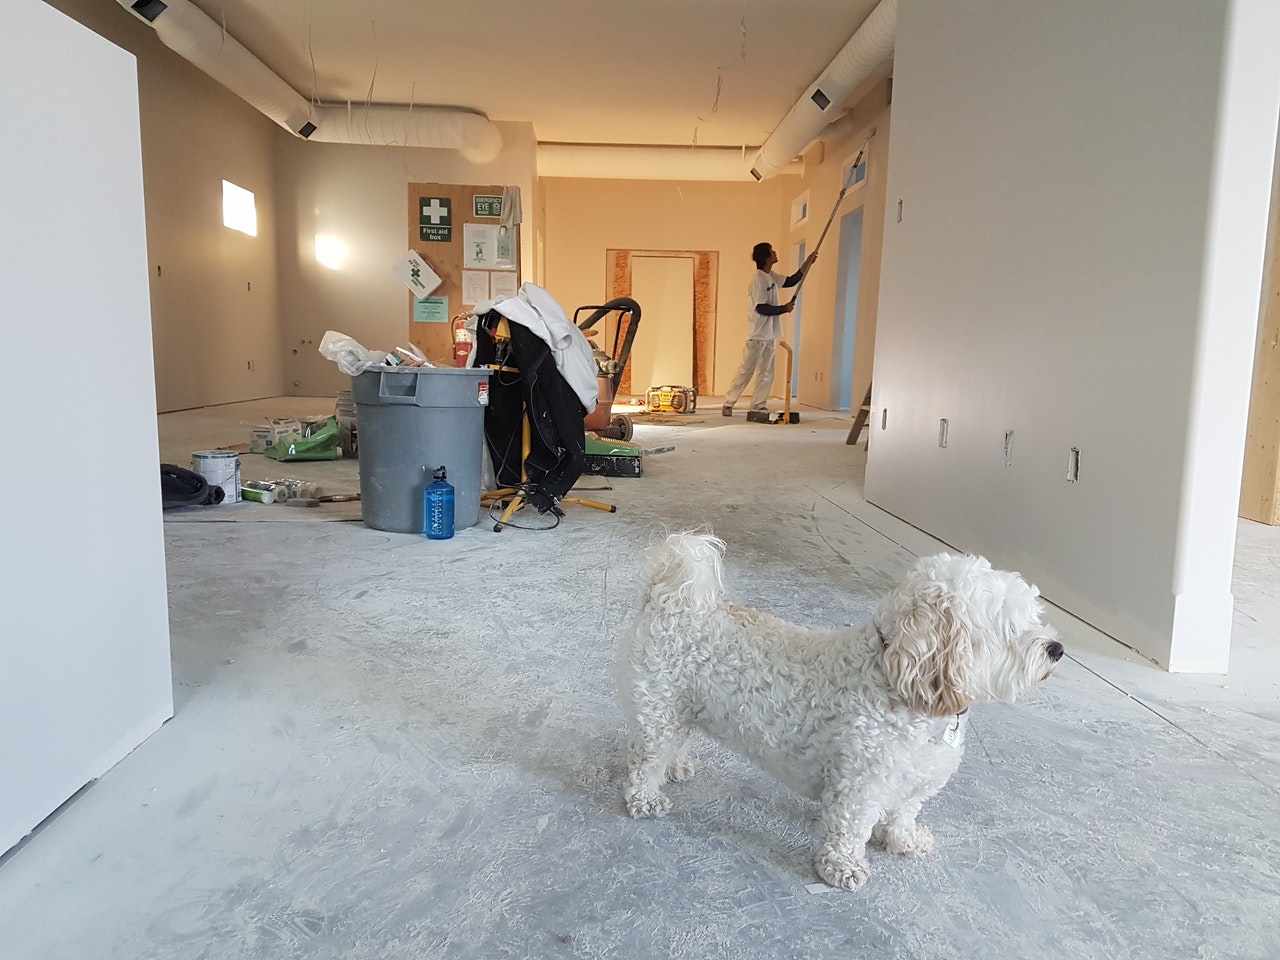 A poodle standing in an area undergoing remodeling - storage options for home renovation